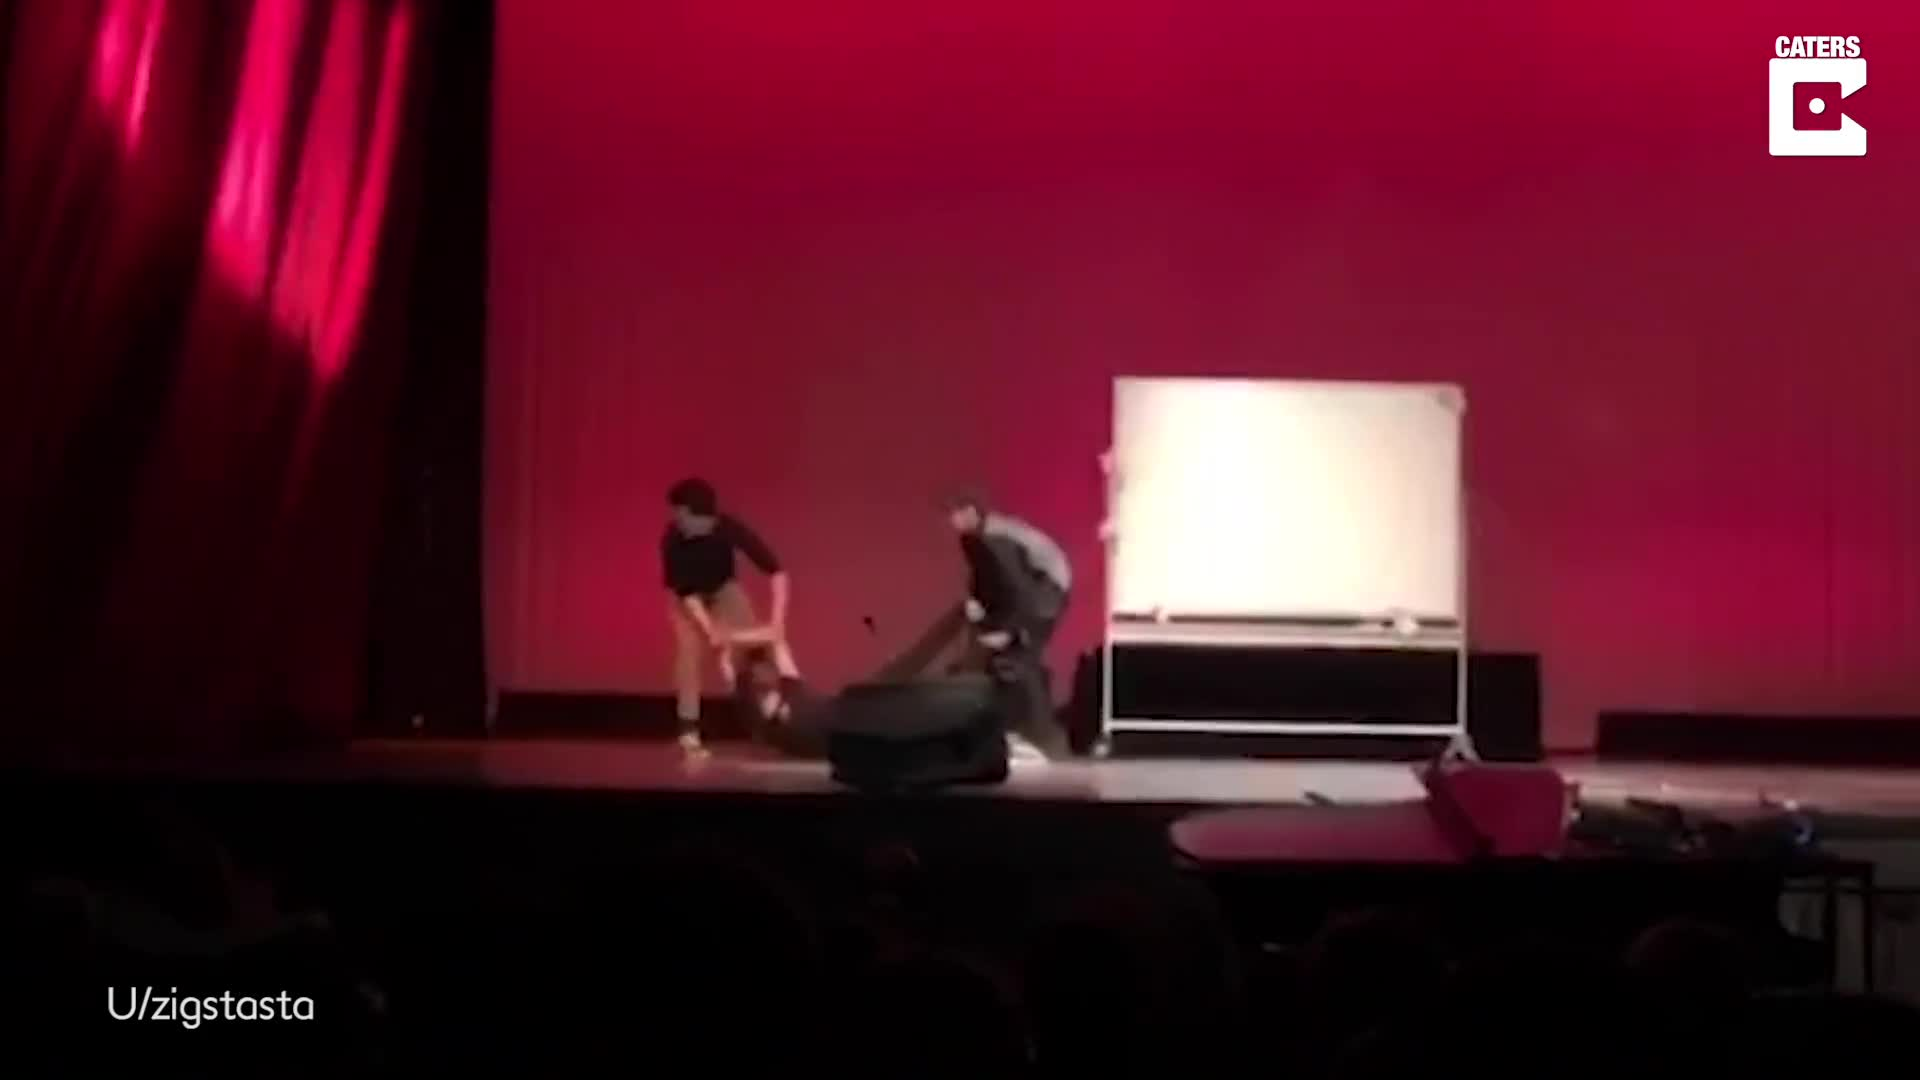 THIS GUY IS NOT MESSING A-ROUND! STUDENT DRAWS PERFECT CIRCLE AS PART OF TALENT CONTEST